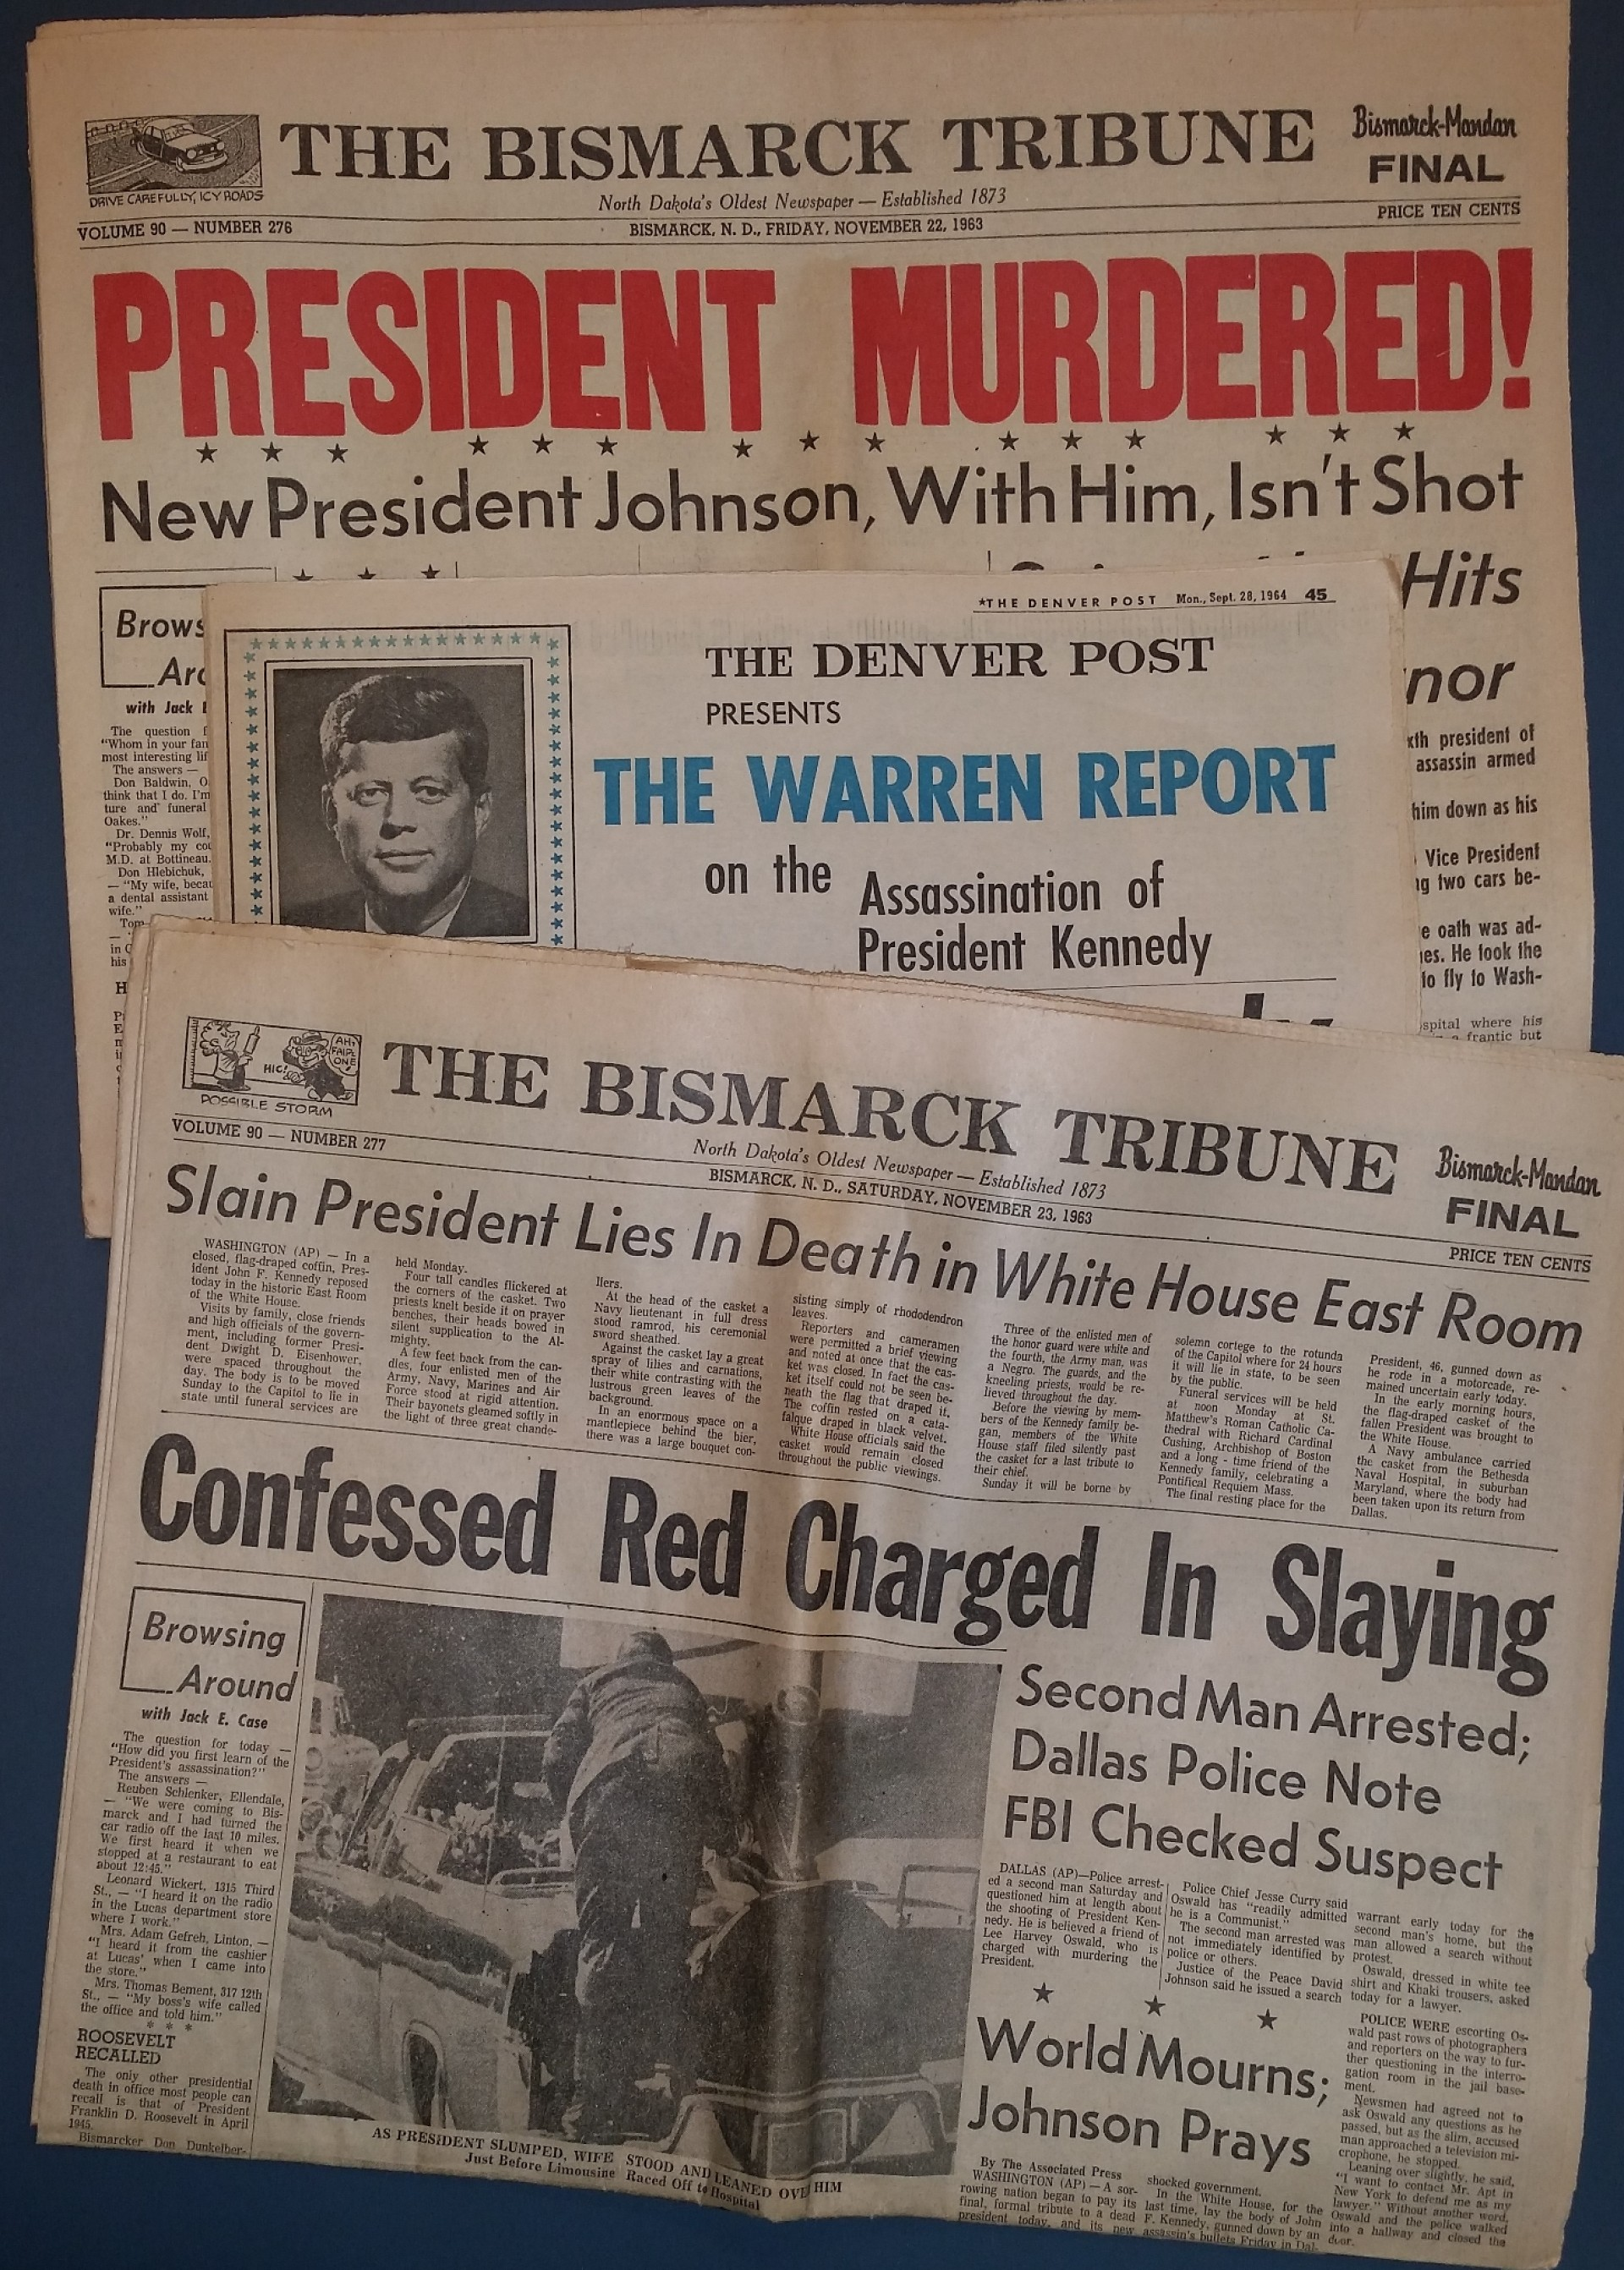 001 Jfk Essay Contest An About John Kennedy Assassination On The Of Impressive Winners Requirements 1920